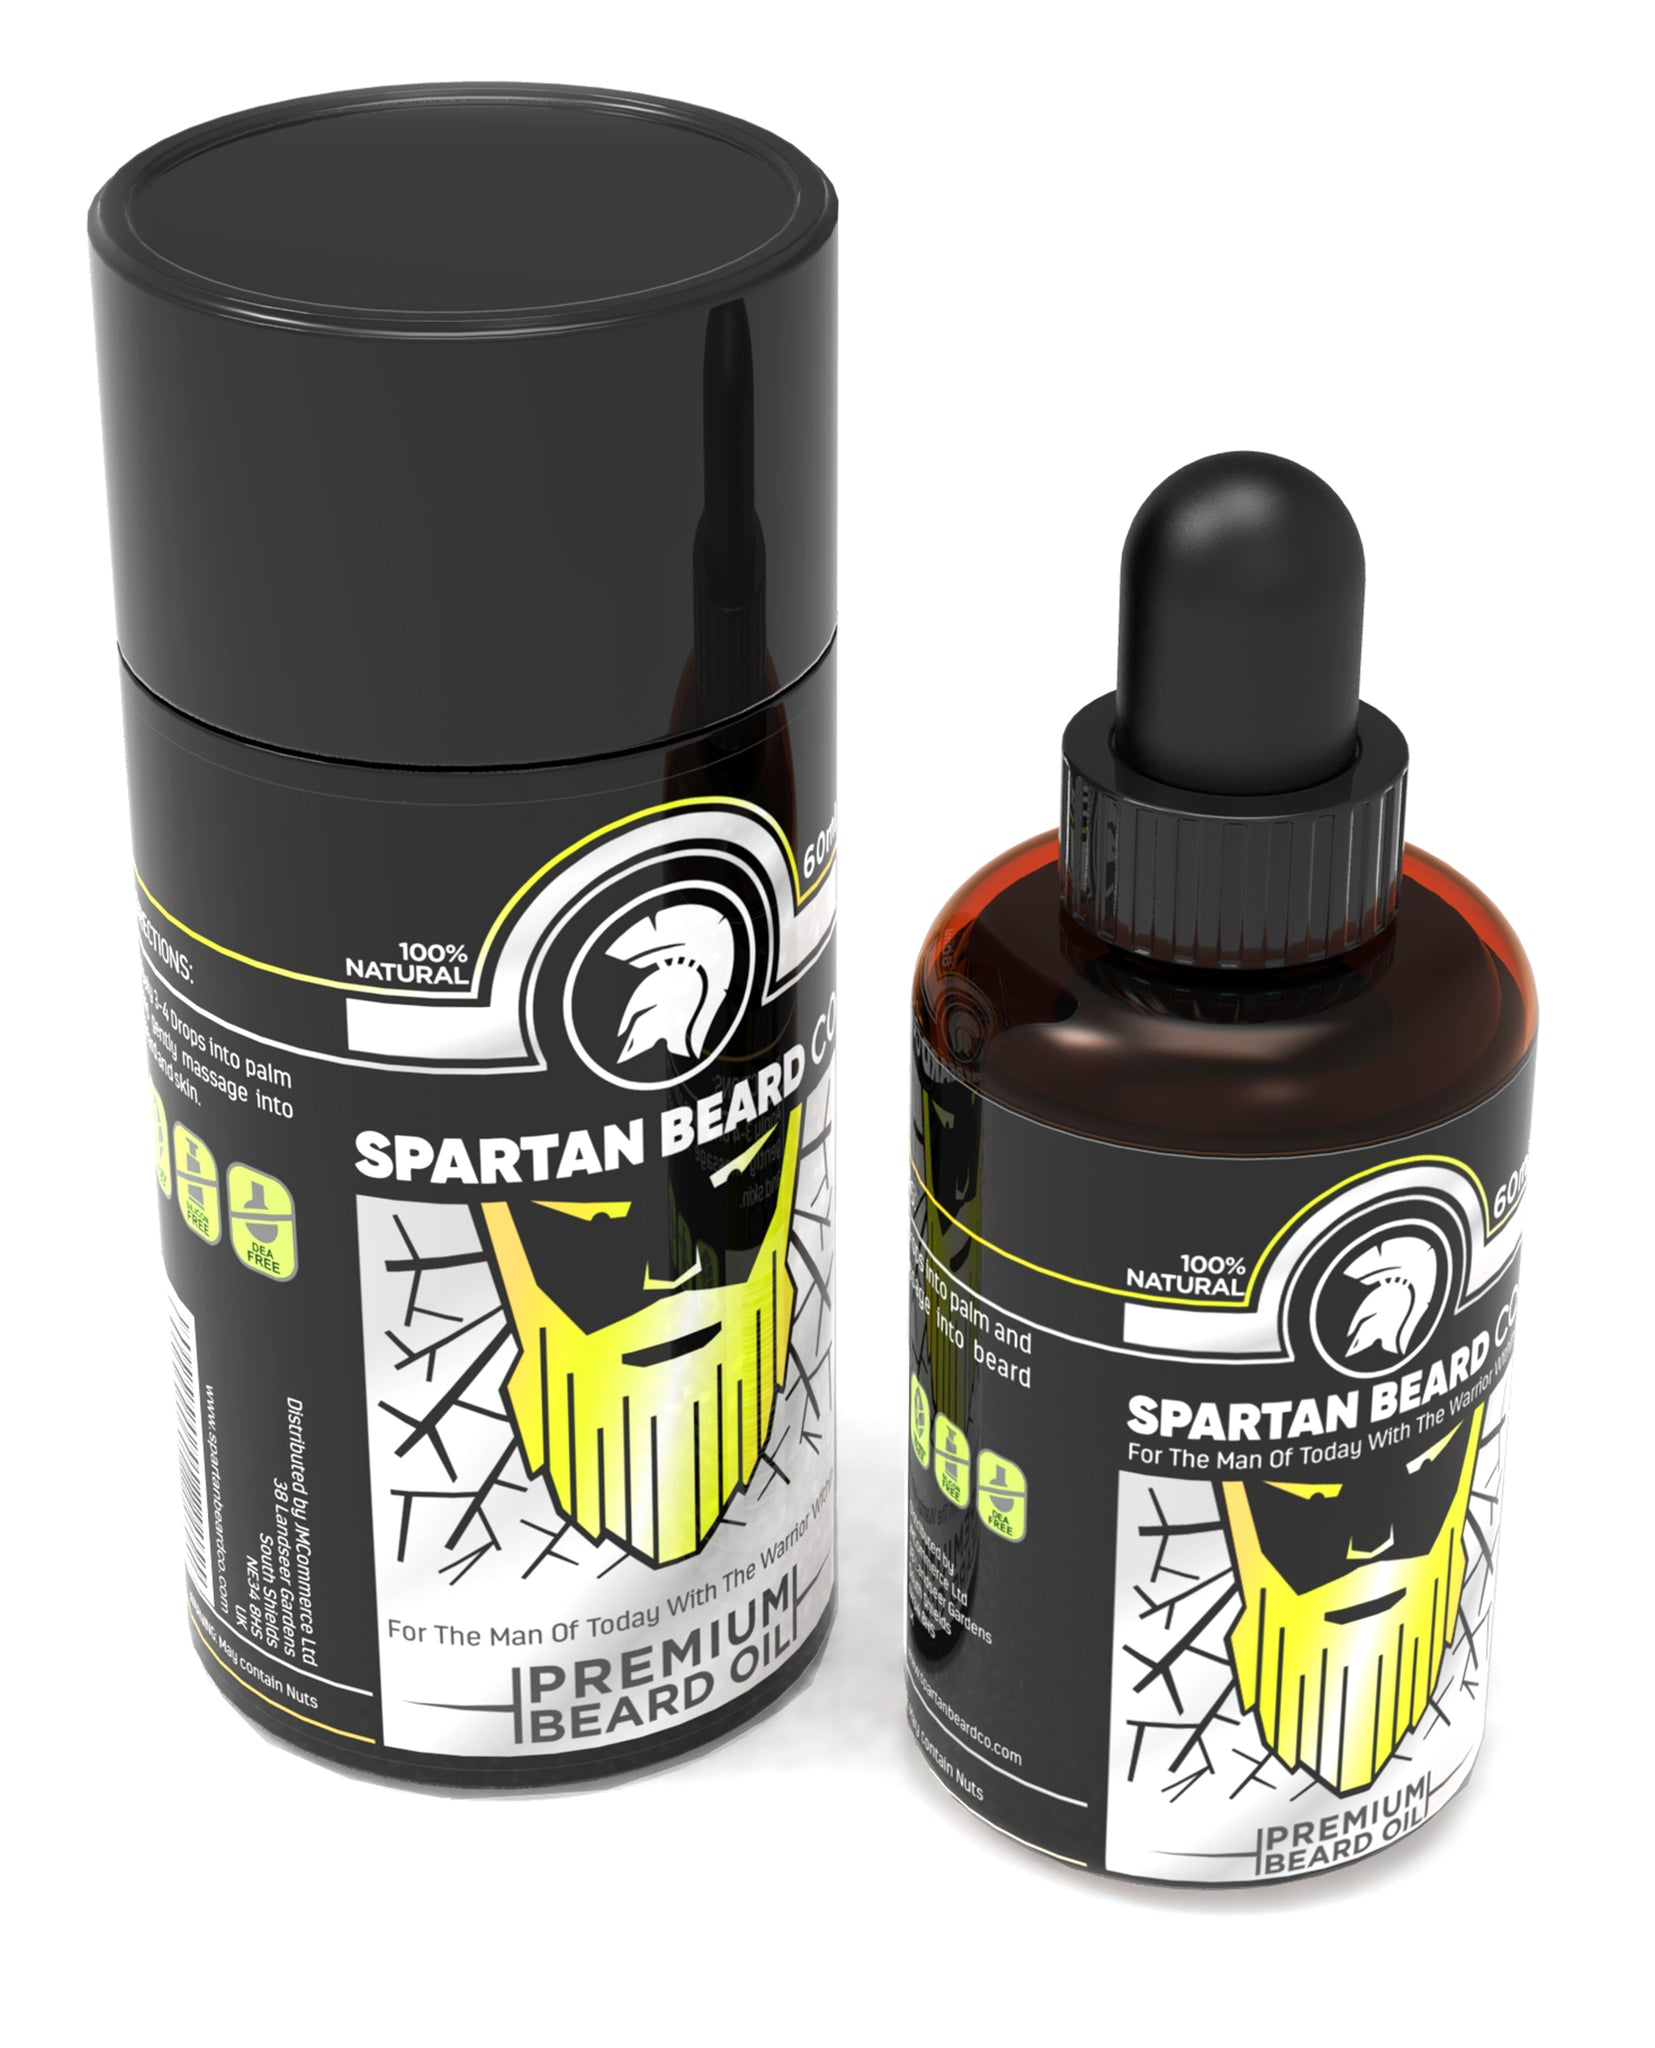 Spartan Beard Oil | 7 Premium Essential Oils Crafted For Beard, Face And Skin Health | Beard Conditioner & Beard Growth Serum | Join The Elite Way Of Beard Care